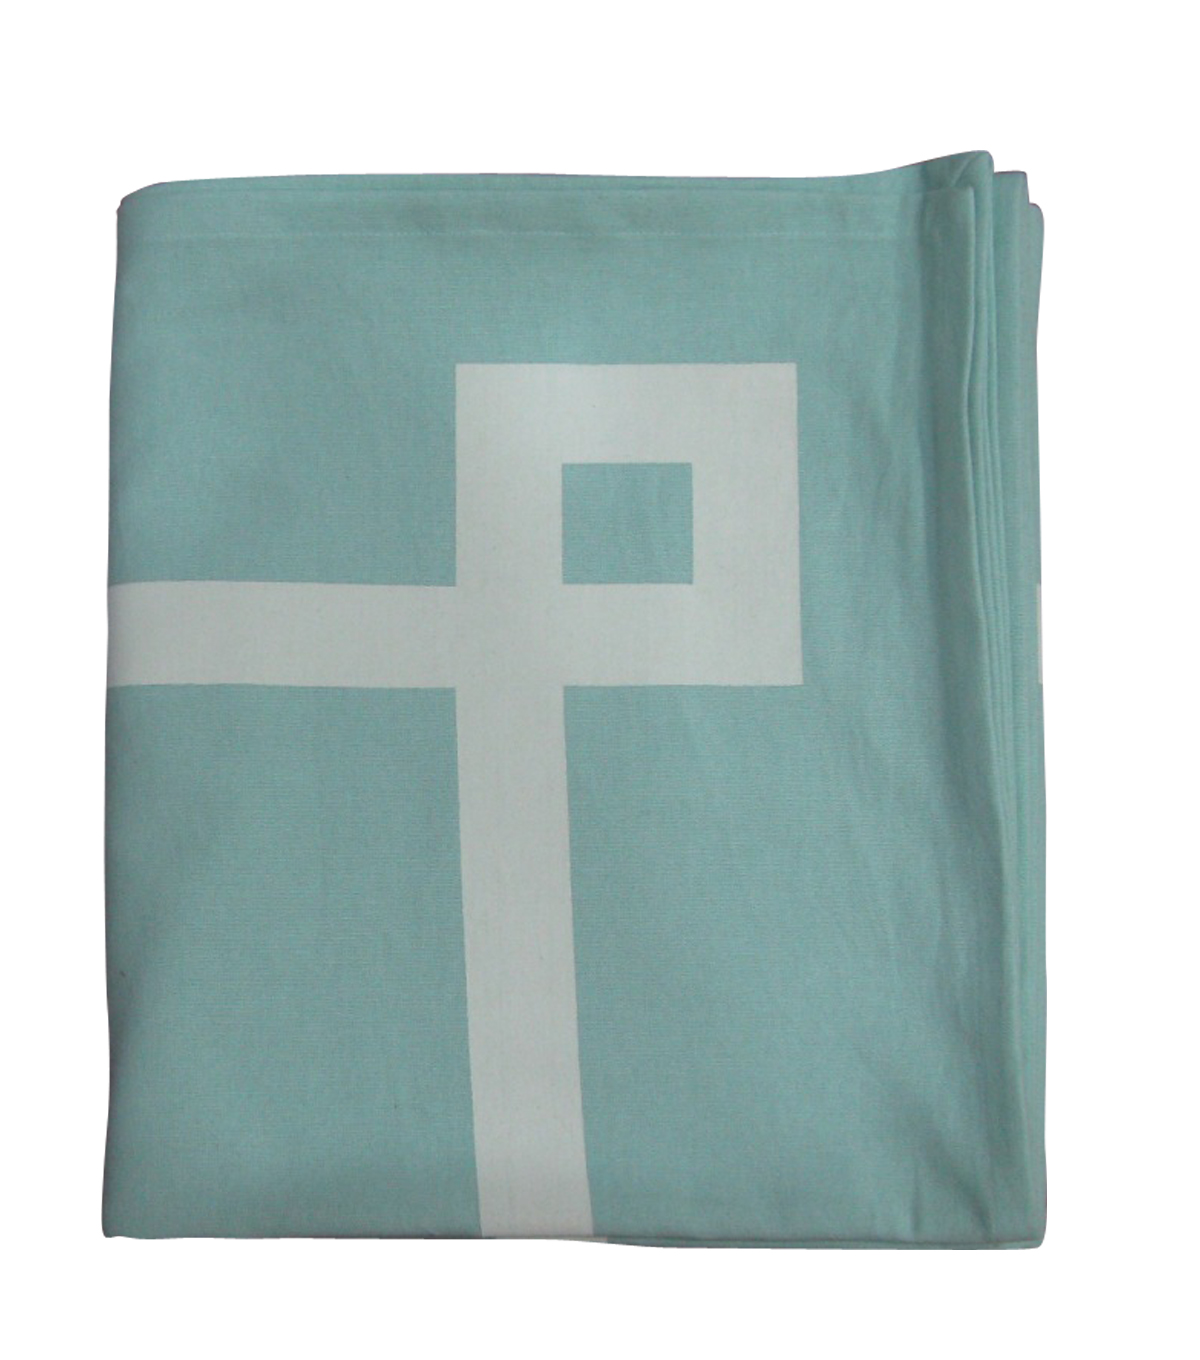 Easter 9'x5' Rectangular Tablecloth-Blue With White Border